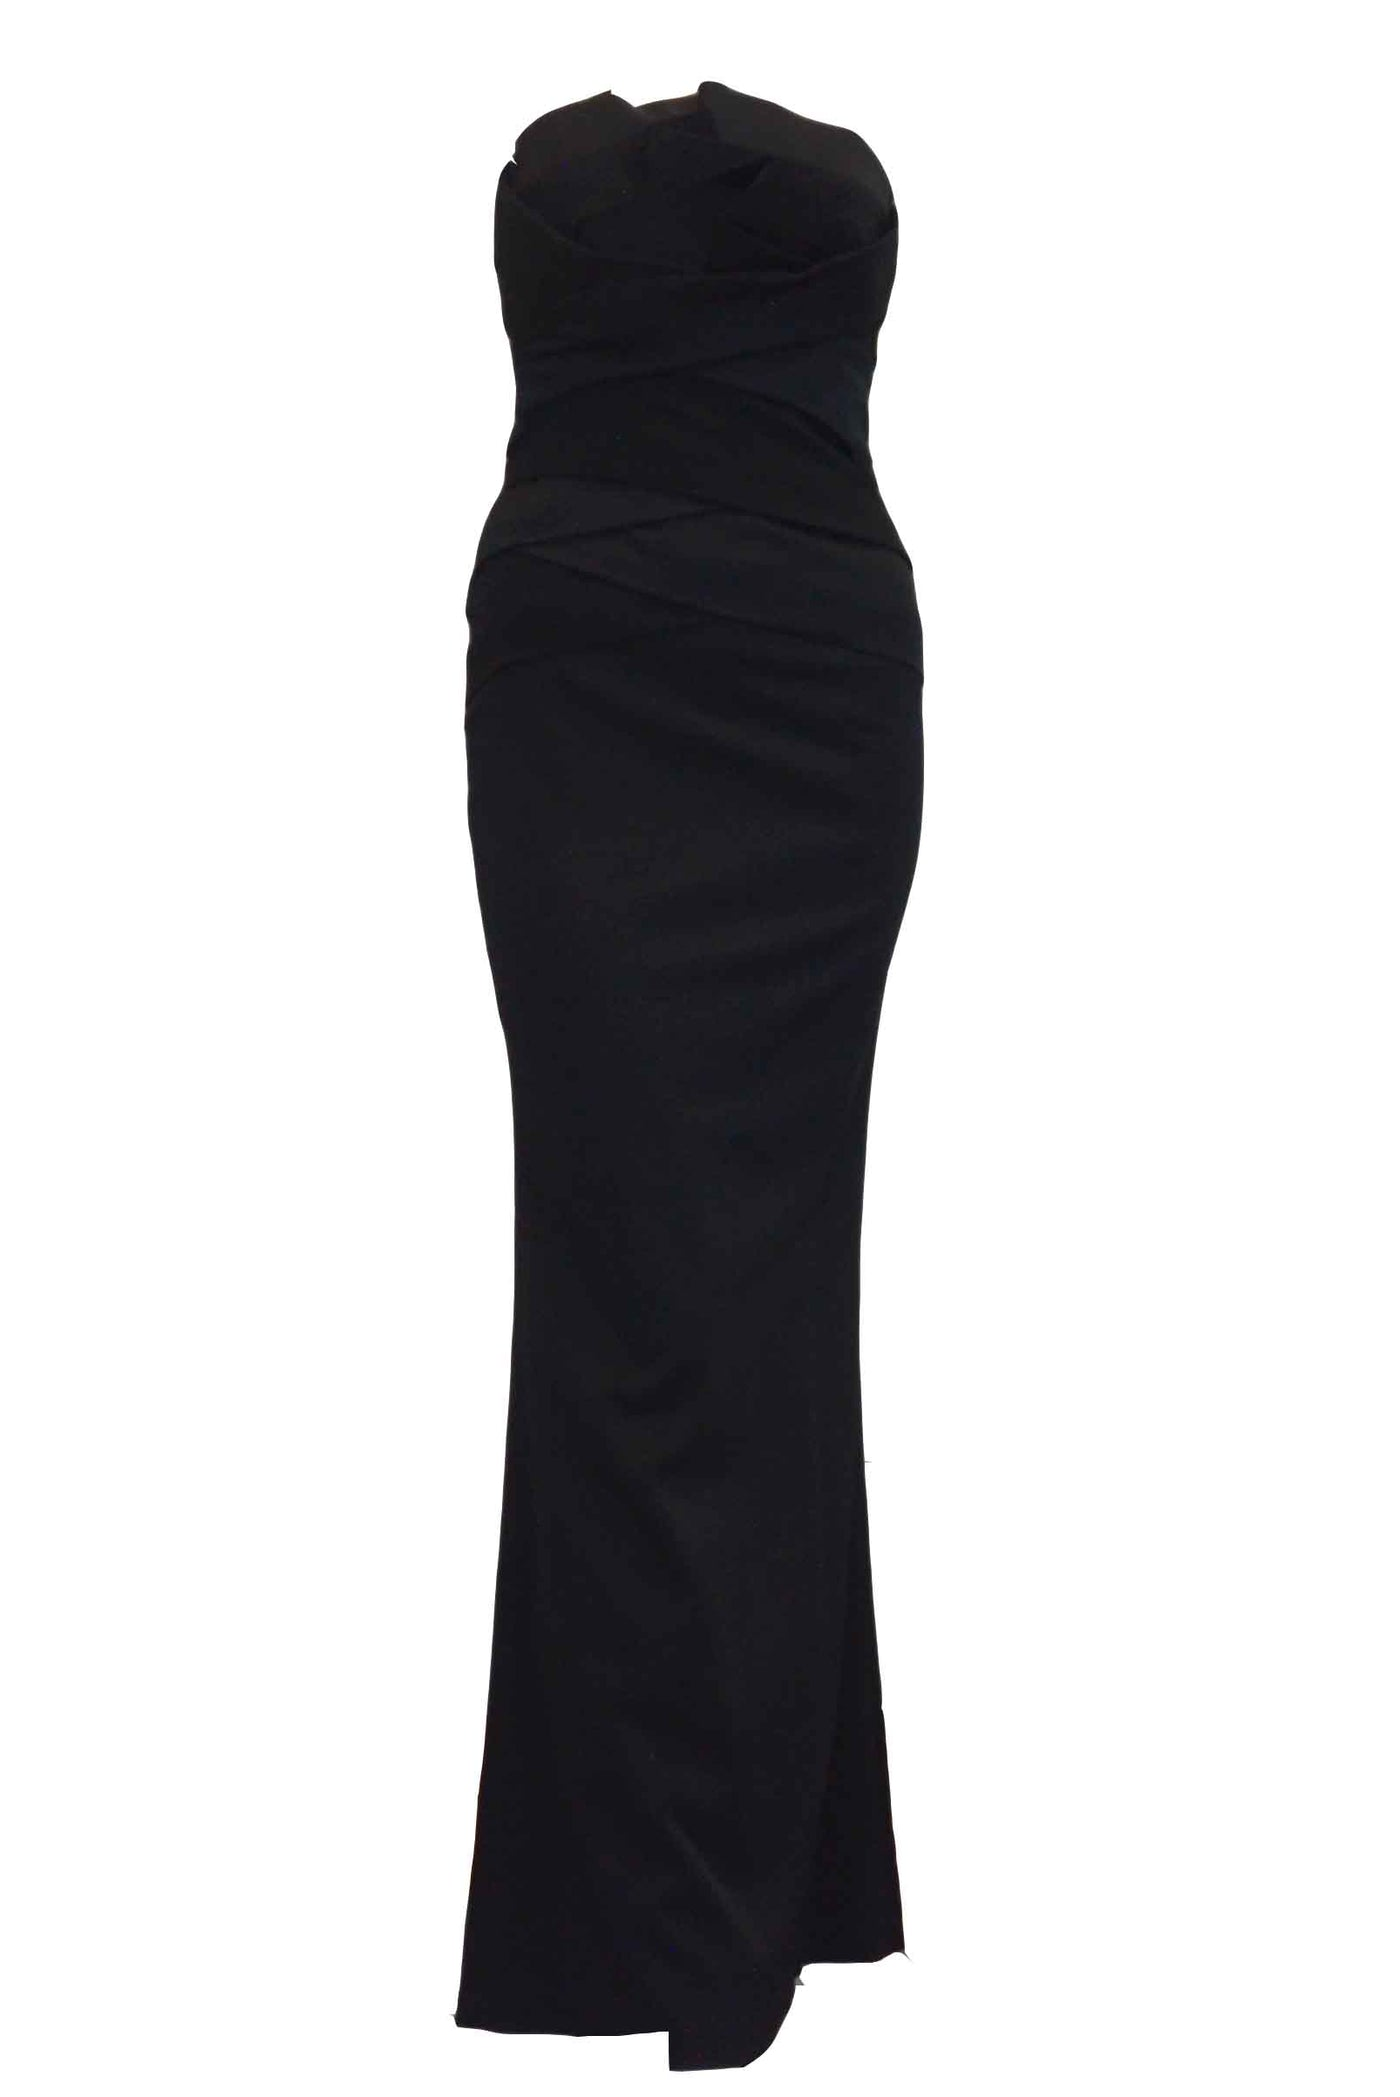 Rent: Coast London - Black Strapless Pleated Long Dress